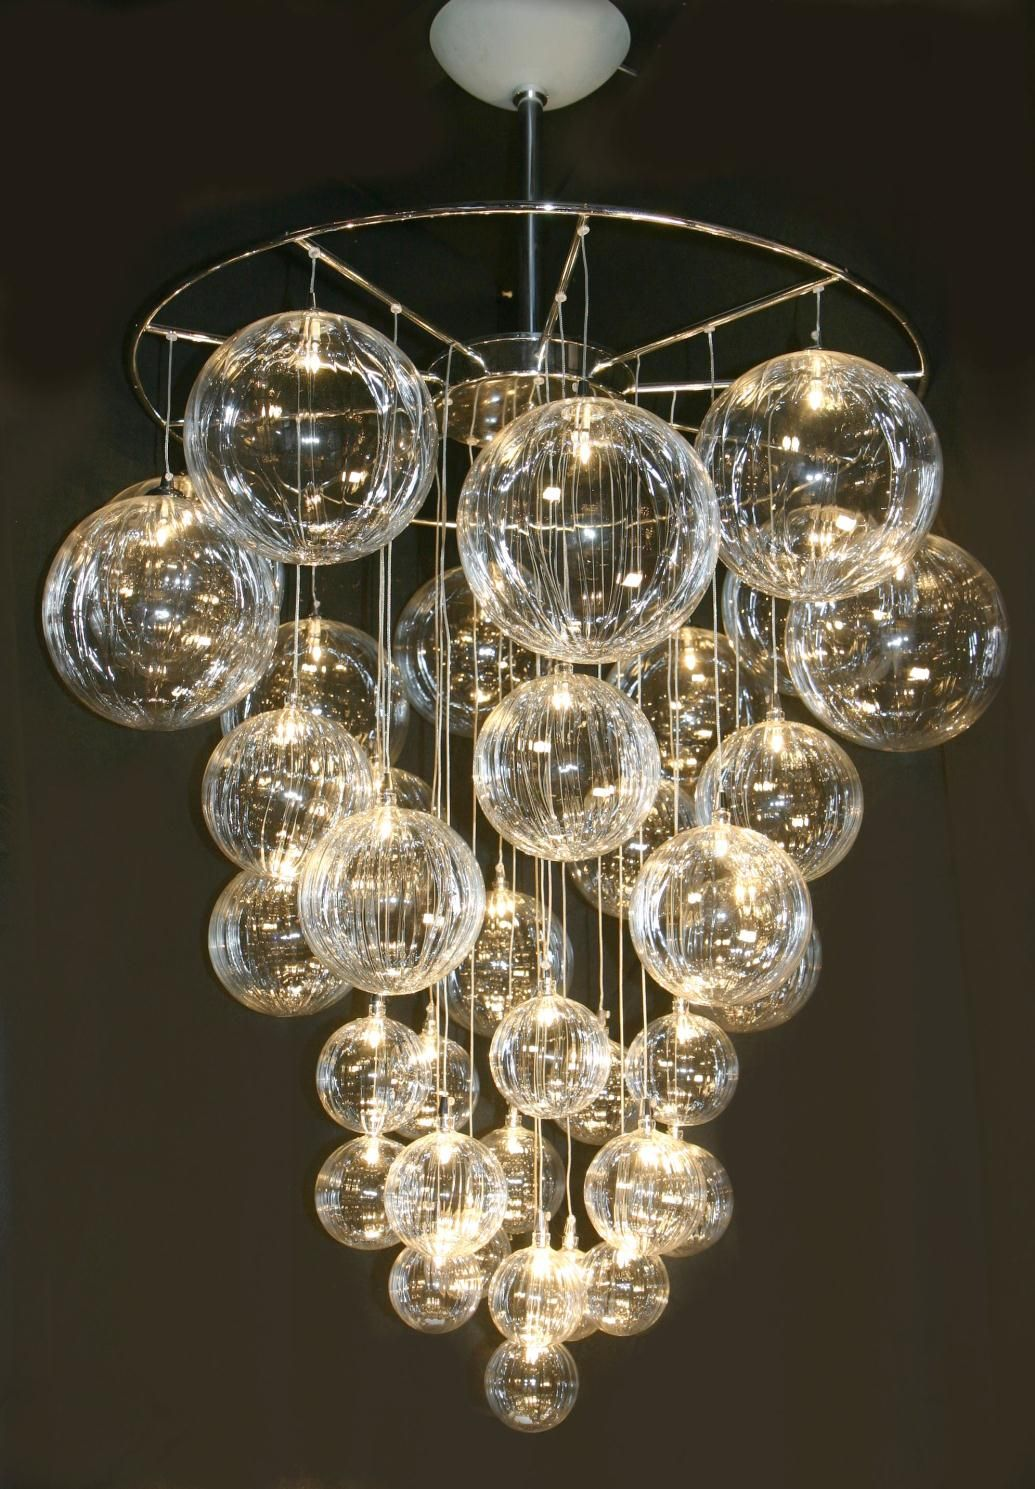 20 Incredibly Beautiful Chandeliers That Will Mesmerize